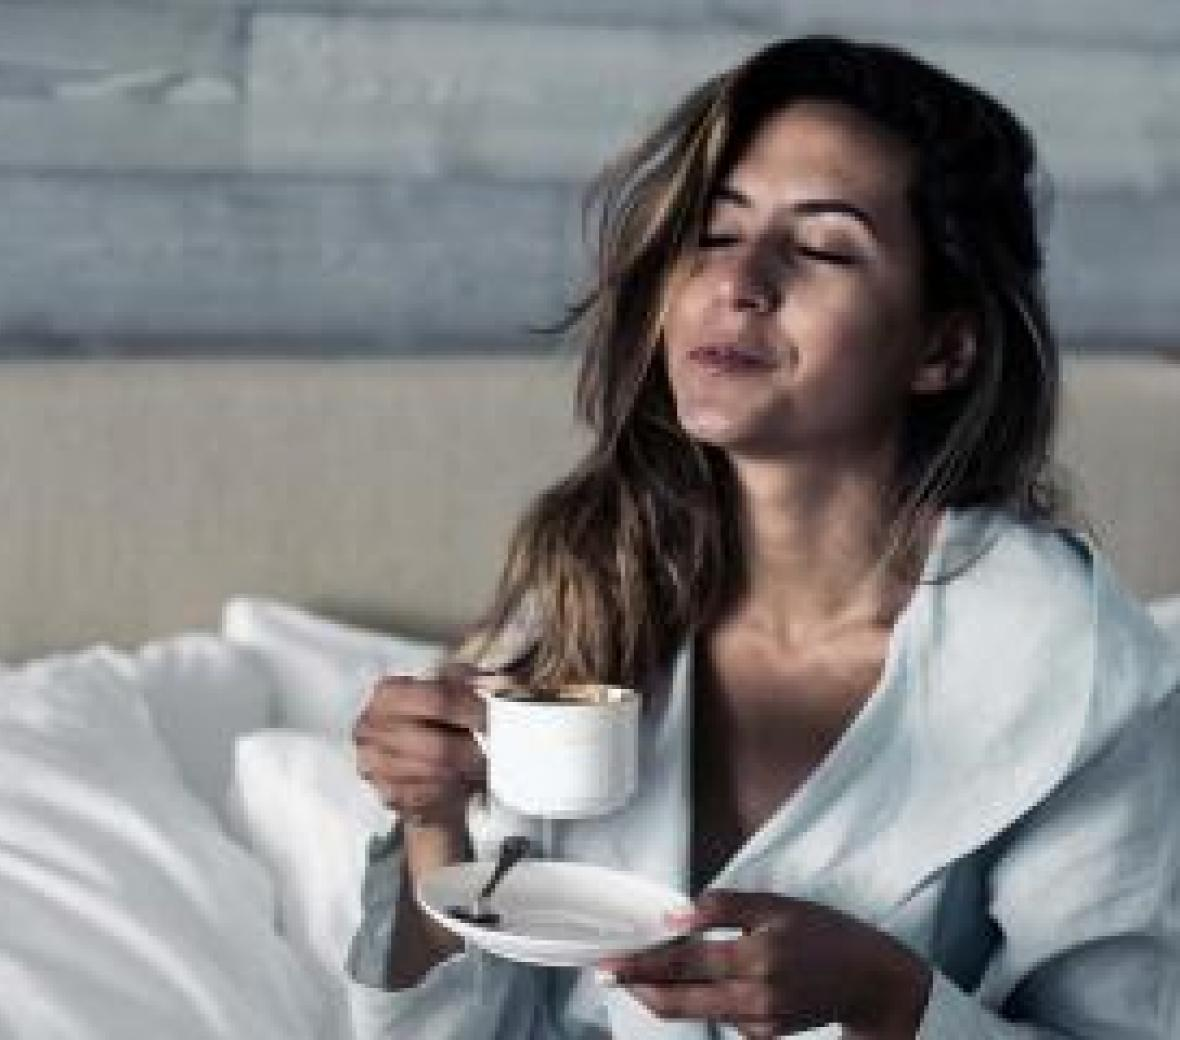 A woman sitting on a bed drinking coffee